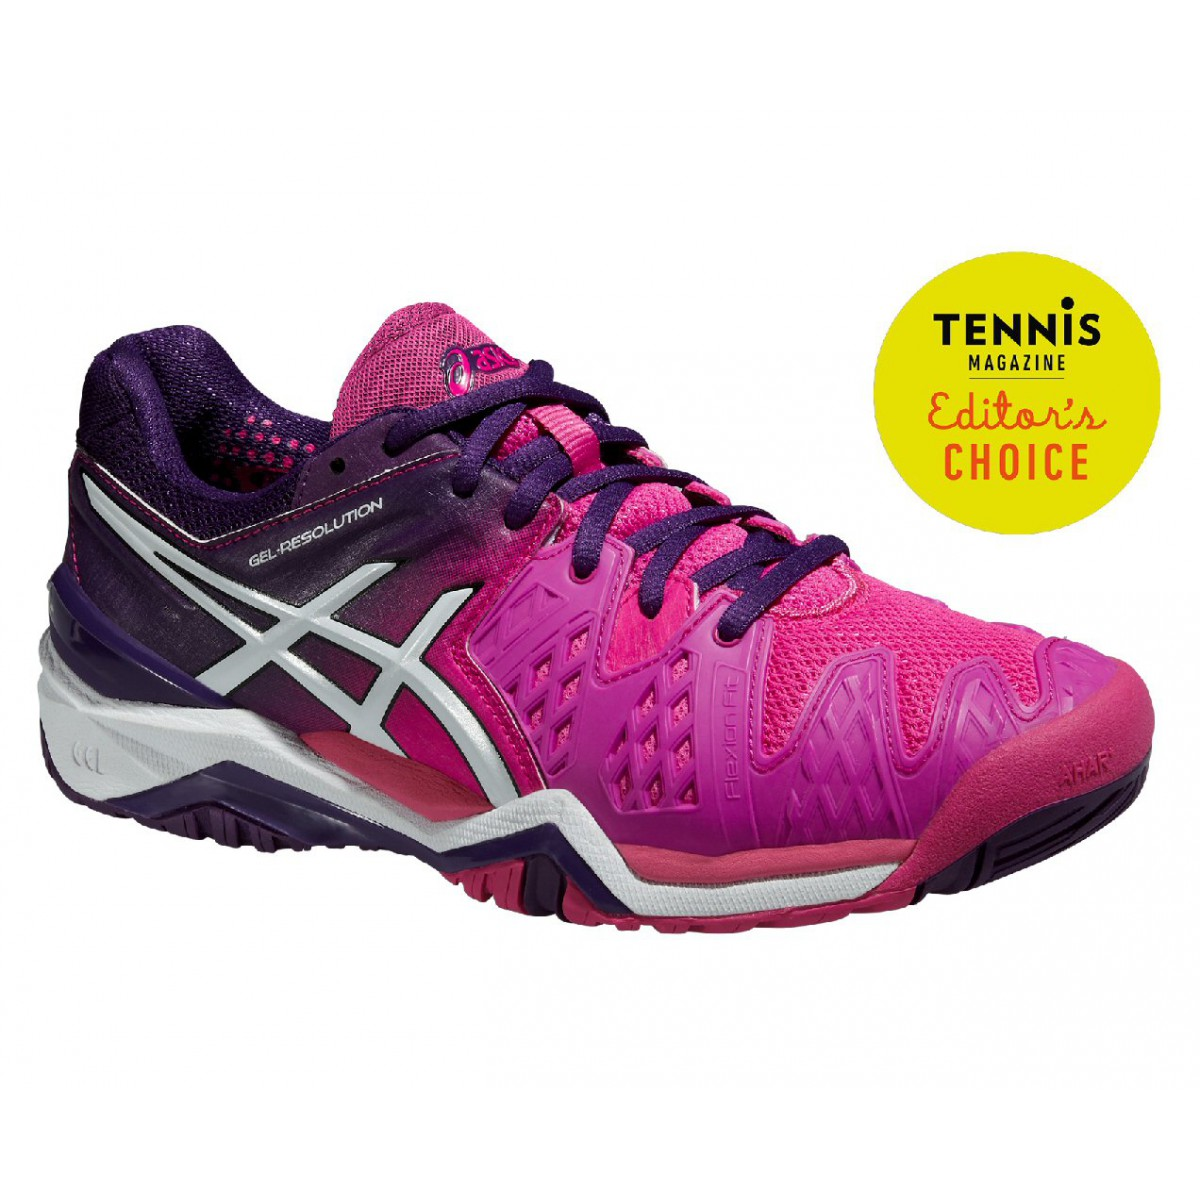 asics gel resolution 6 2015 hotpink tennisschuhe damen versandkostenfrei online bestellen. Black Bedroom Furniture Sets. Home Design Ideas